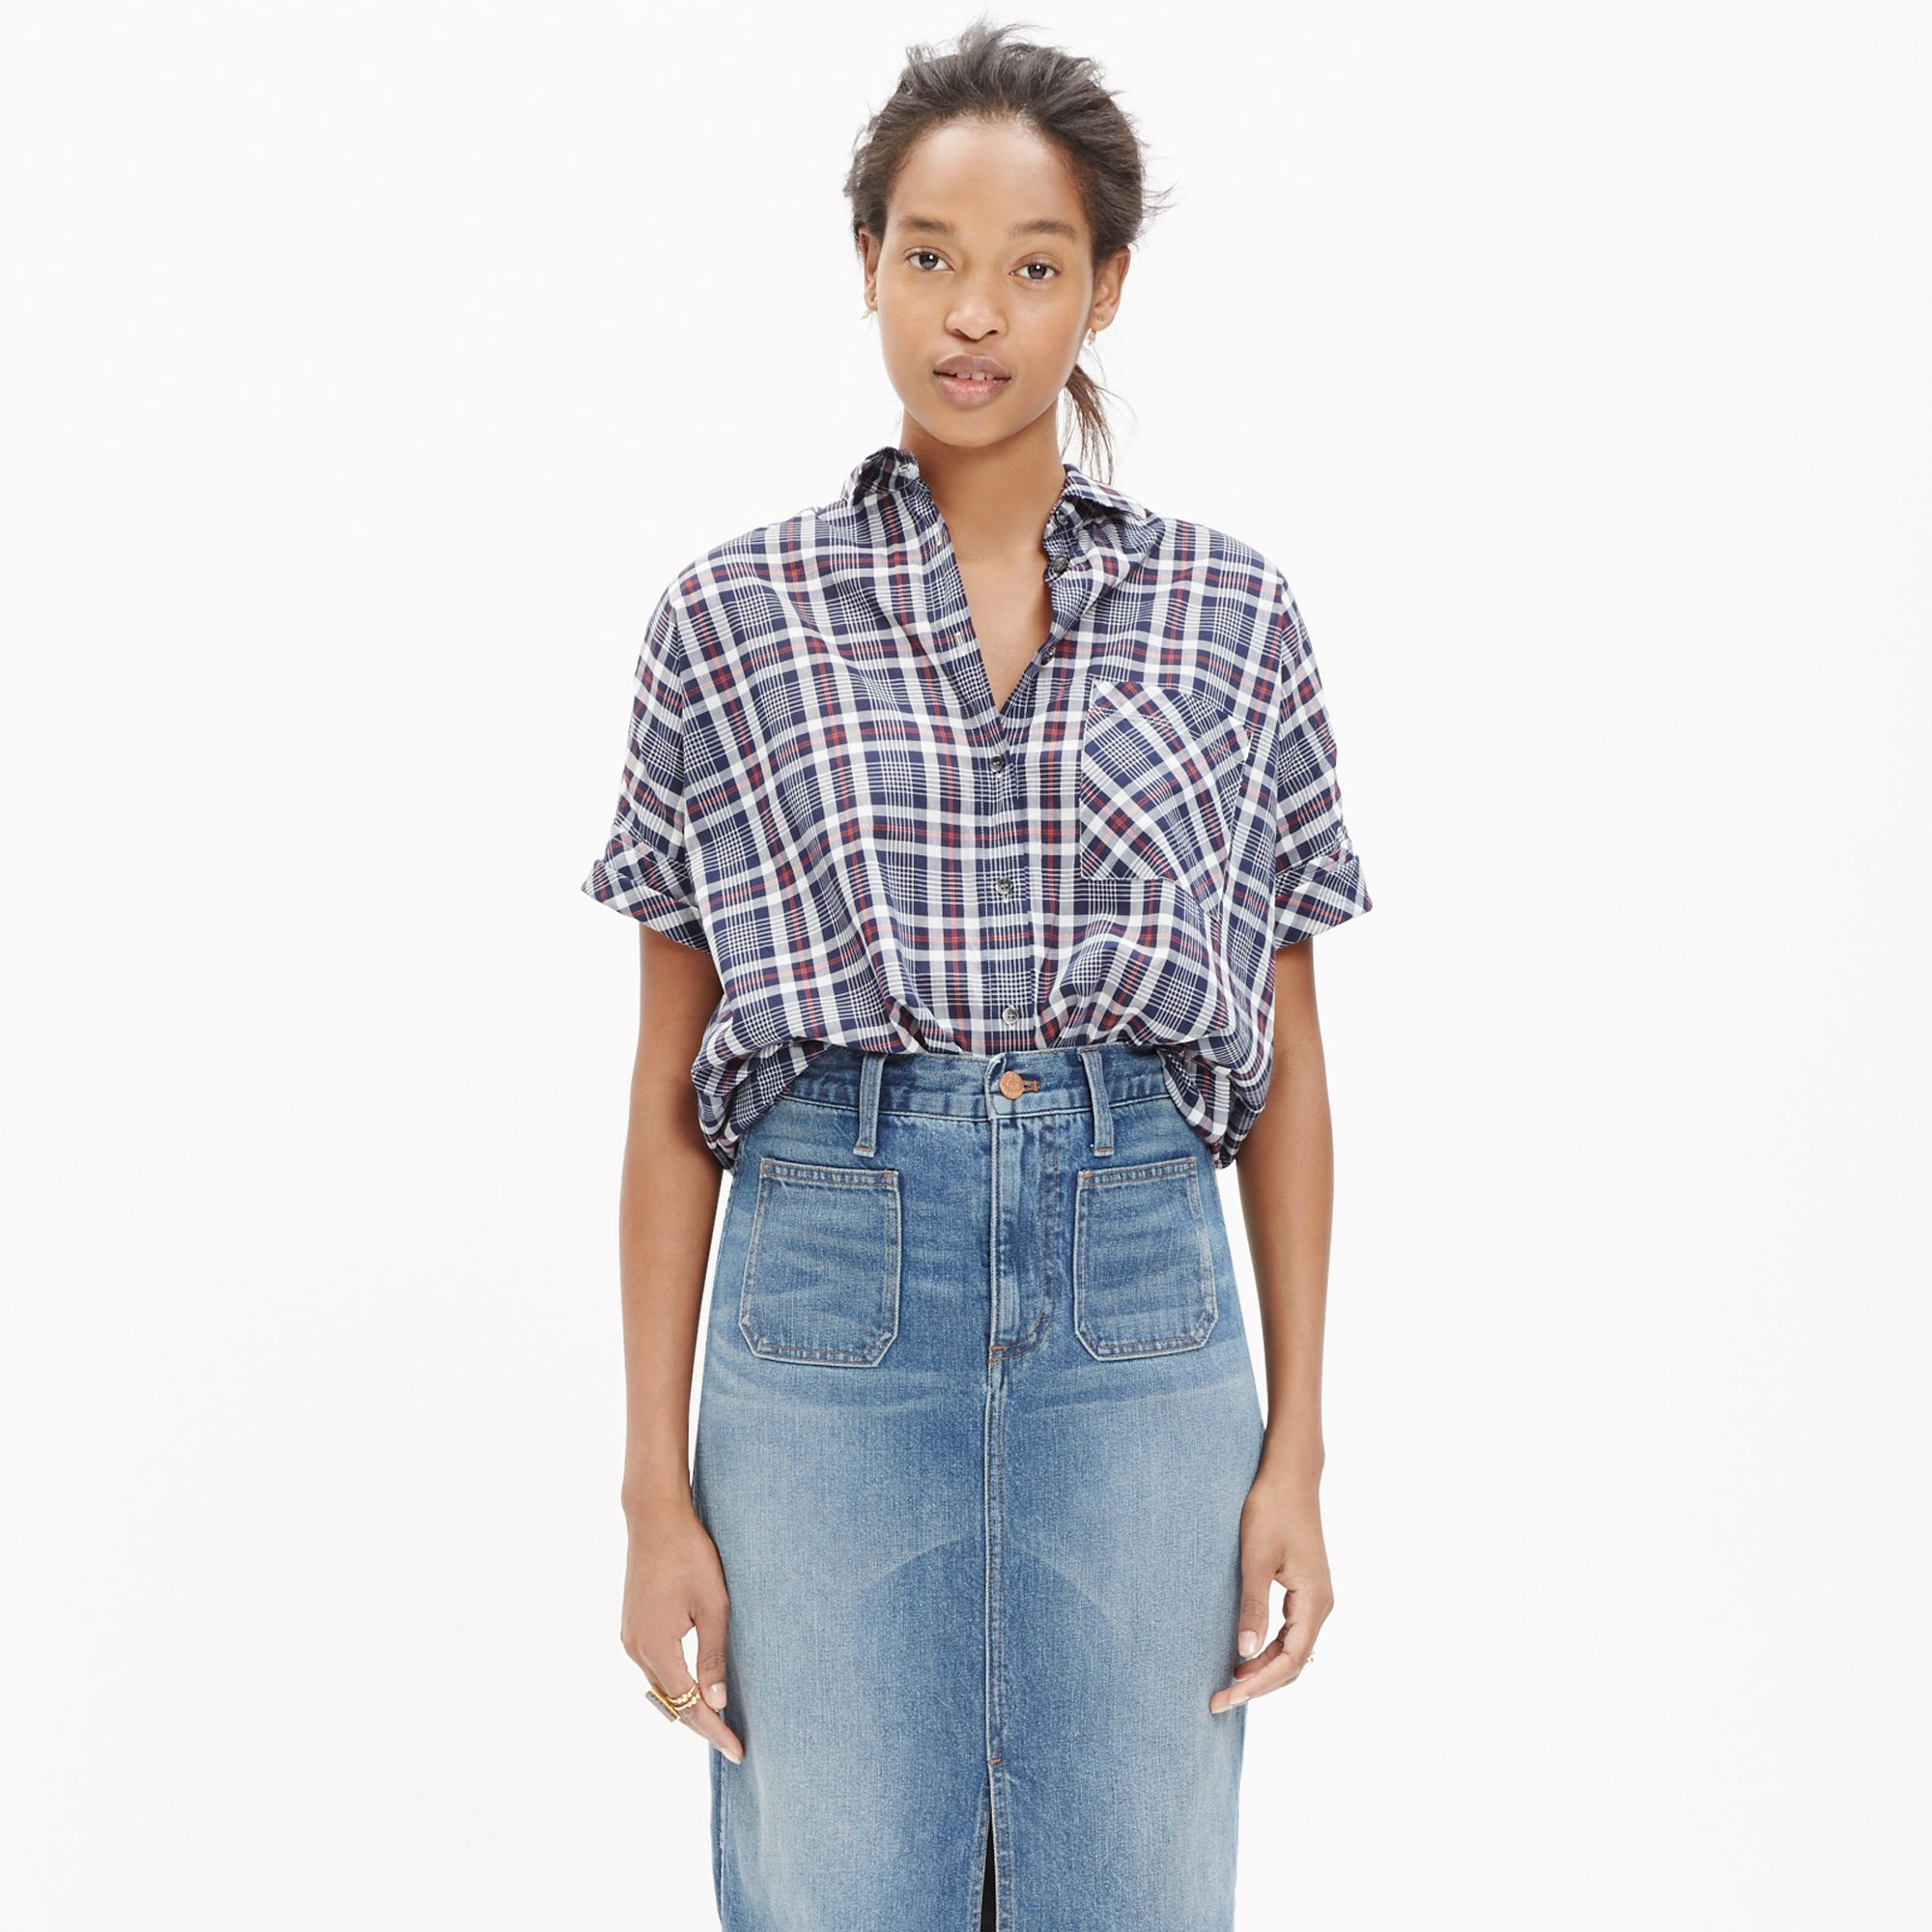 Lyst madewell courier shirt in dekalb plaid in gray for Grey plaid shirt womens